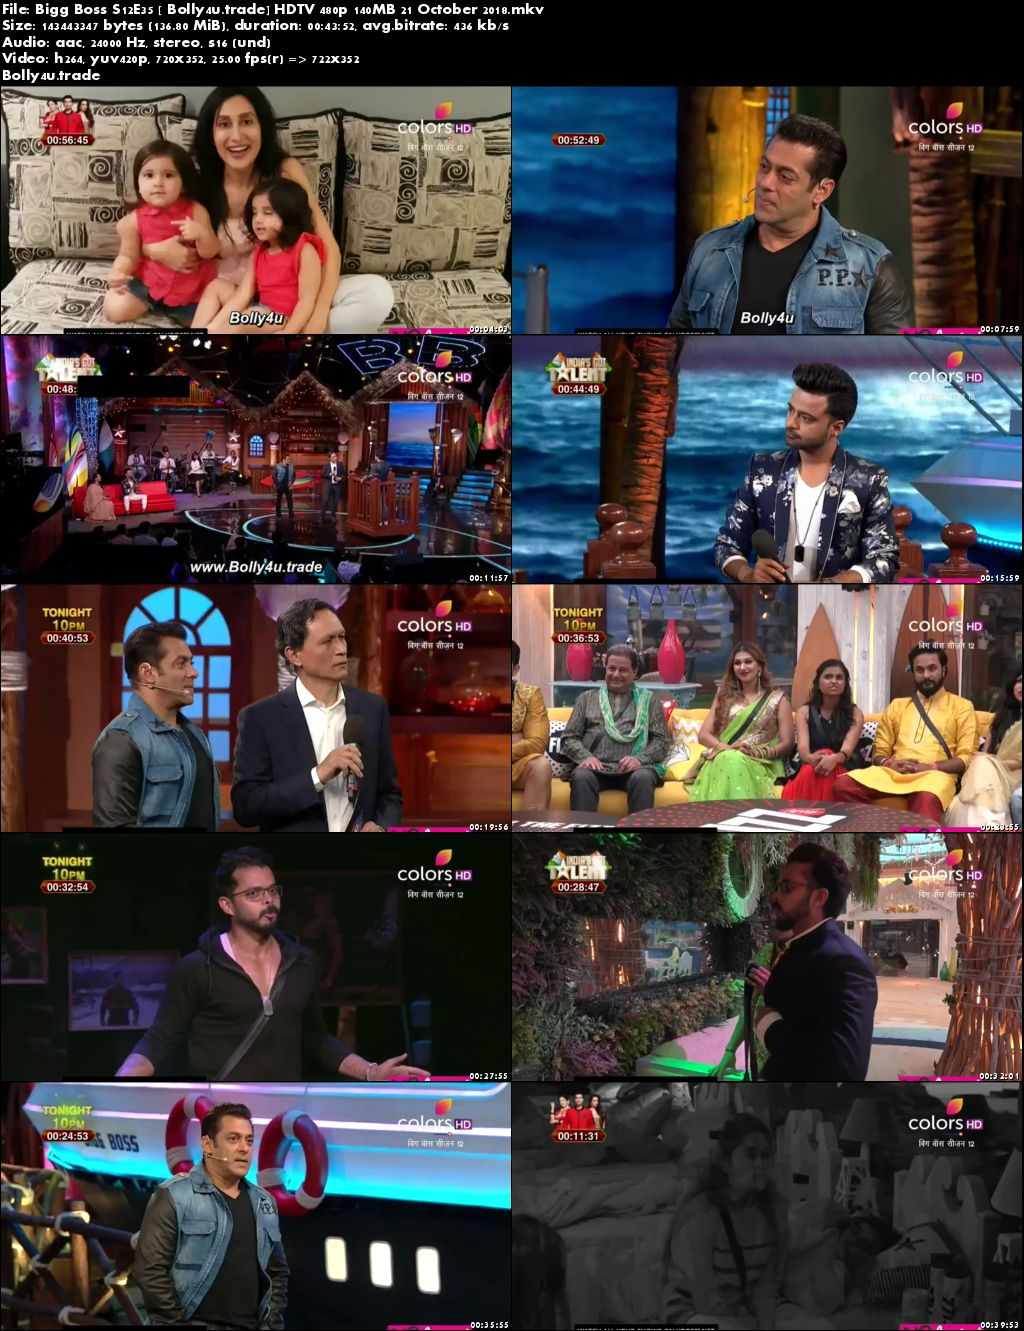 Bigg Boss S12E35 HDTV 480p 140MB 21 October 2018 Download